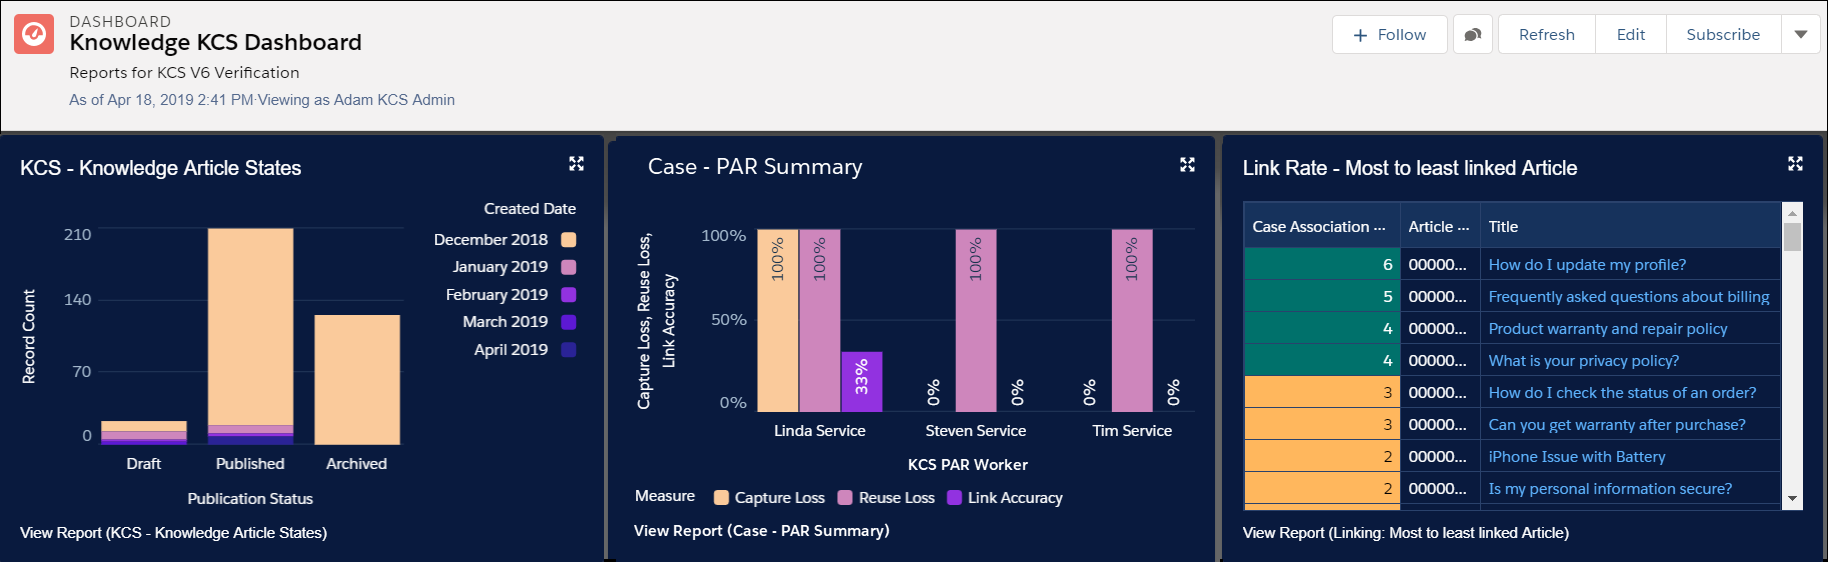 Two search dashboards showing Knowledge Article States, Case - PAR Summary, and Link Rate.